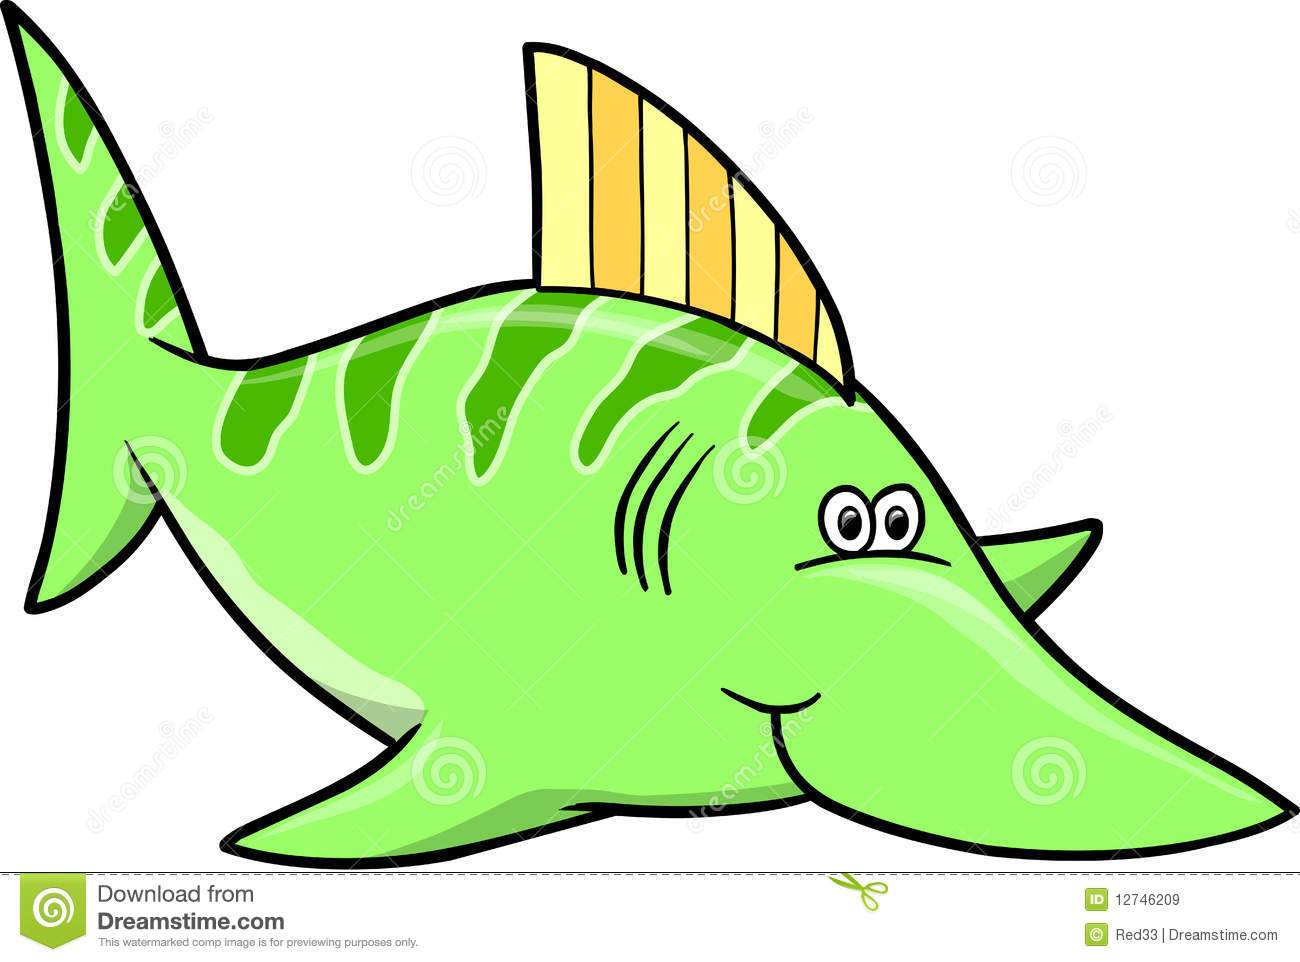 ... -fish-clip-art-clipart-panda-free-clipart-images-JoeyPt-clipart.jpg